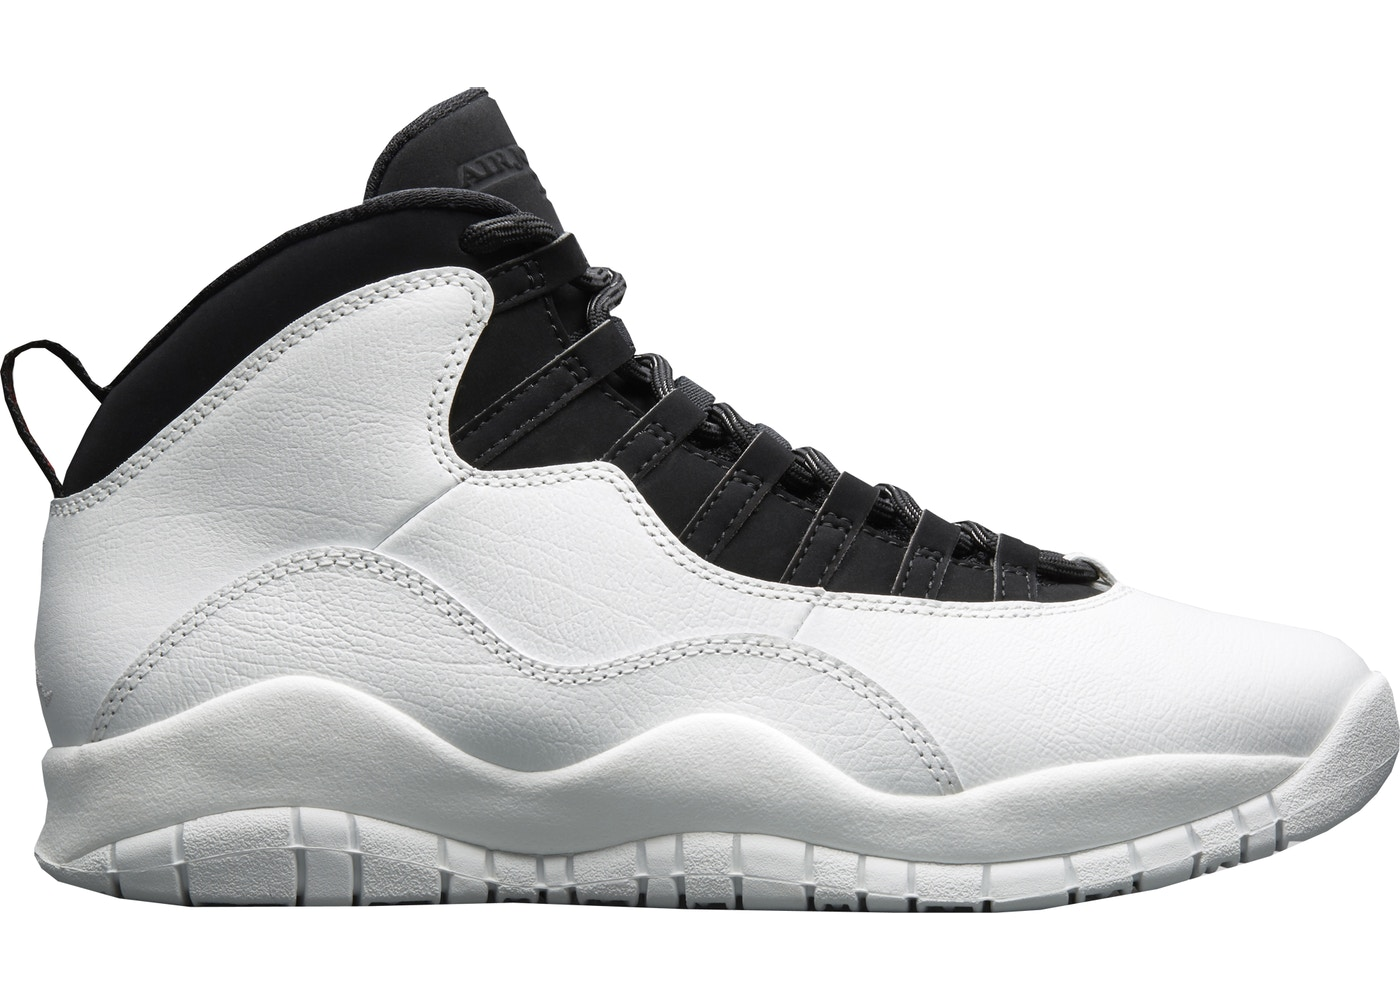 timeless design 9d1c5 52163 Jordan 10 Retro I'm Back